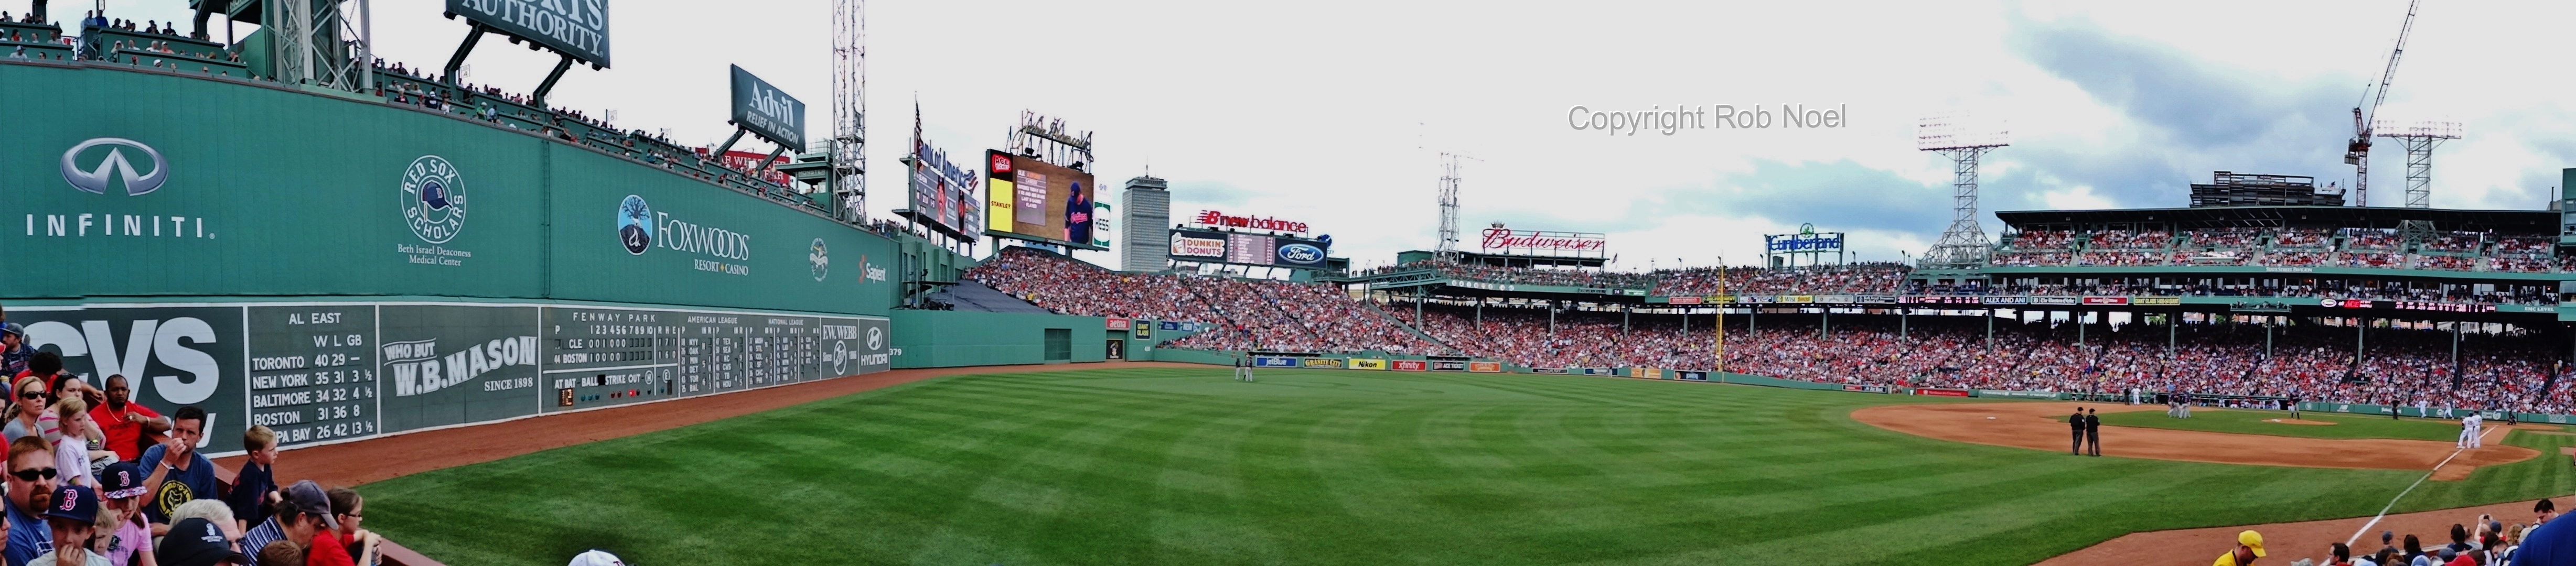 Left Field Green Monster in Fenway Park Panoramic photo